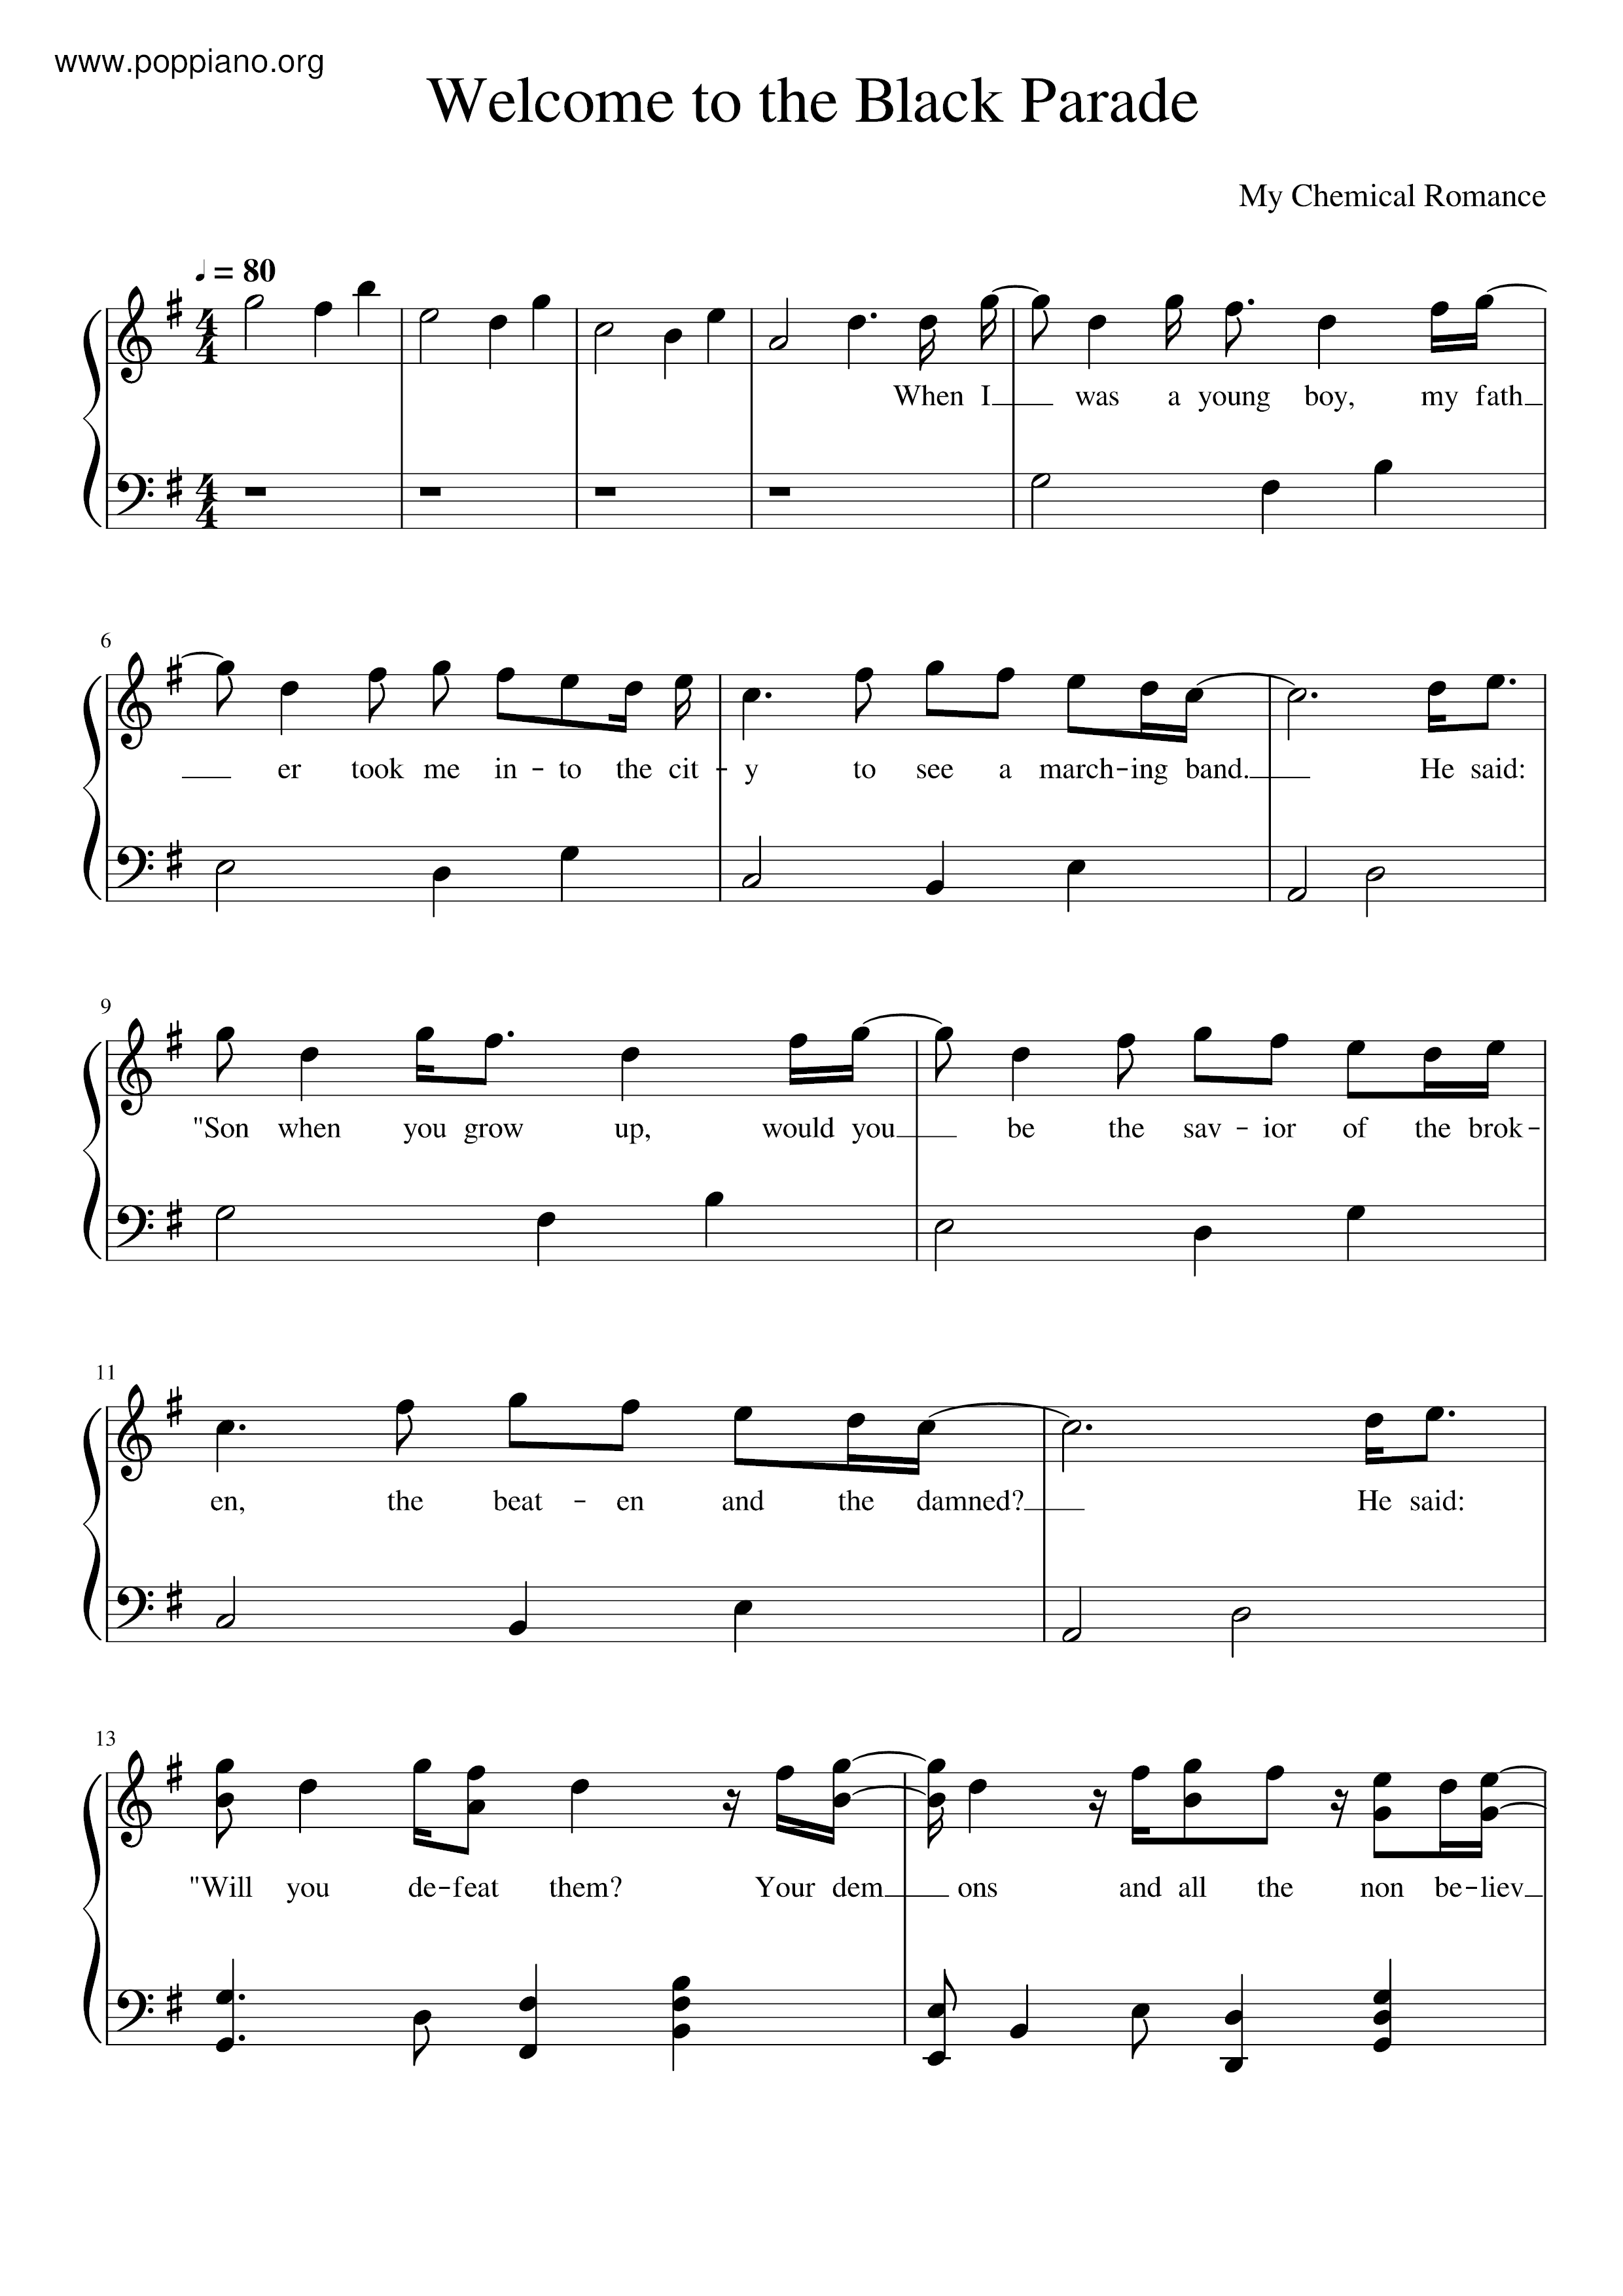 ☆ my chemical romance-welcome to the black parade sheet music pdf, - free  score download ☆  www.poppiano.org